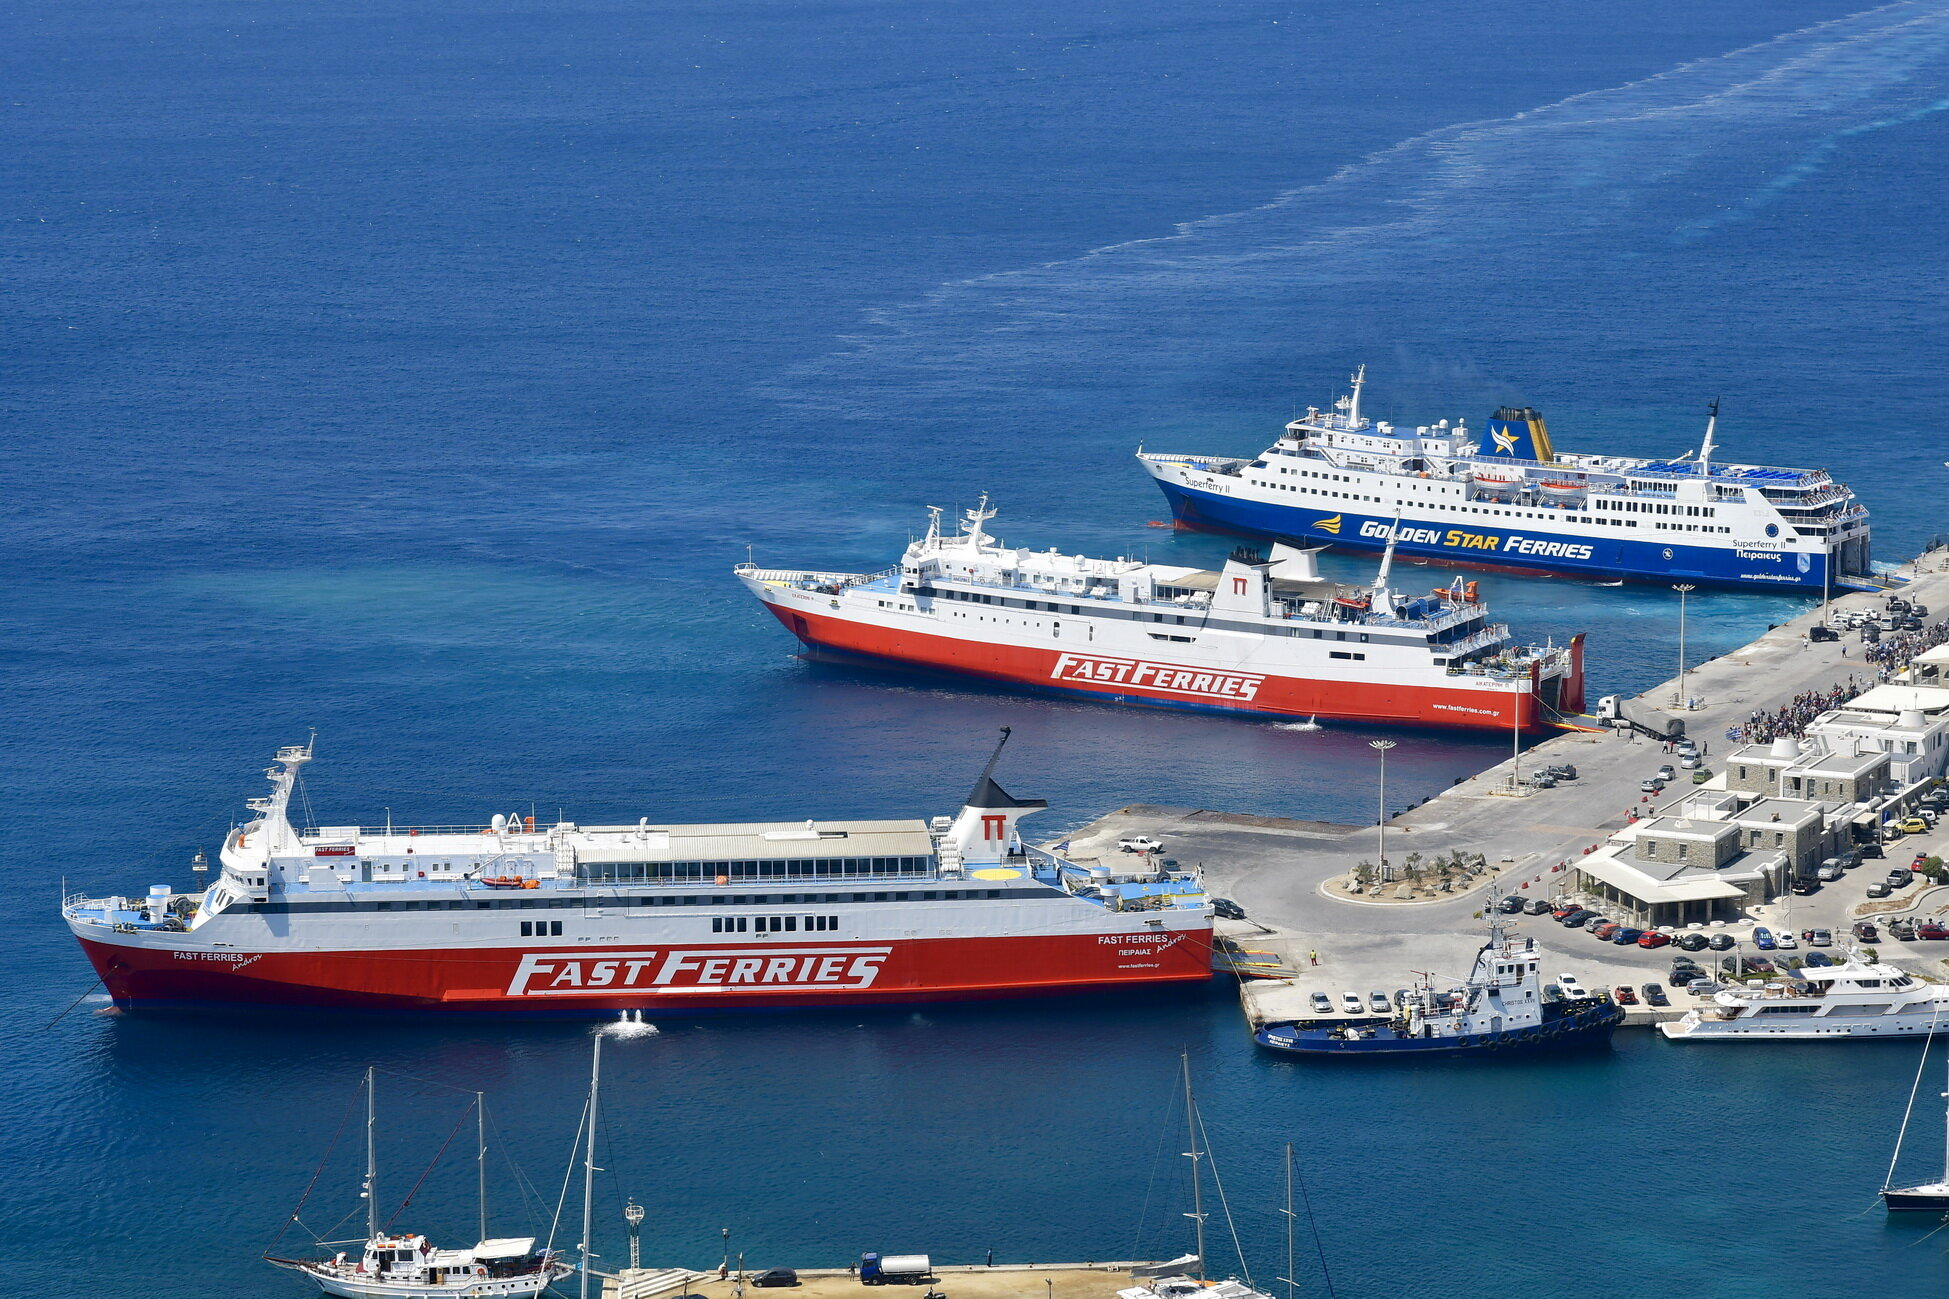 Superferry II_Ekaterini P_Fast Ferries Andros_24-08-18_Mykonos_2